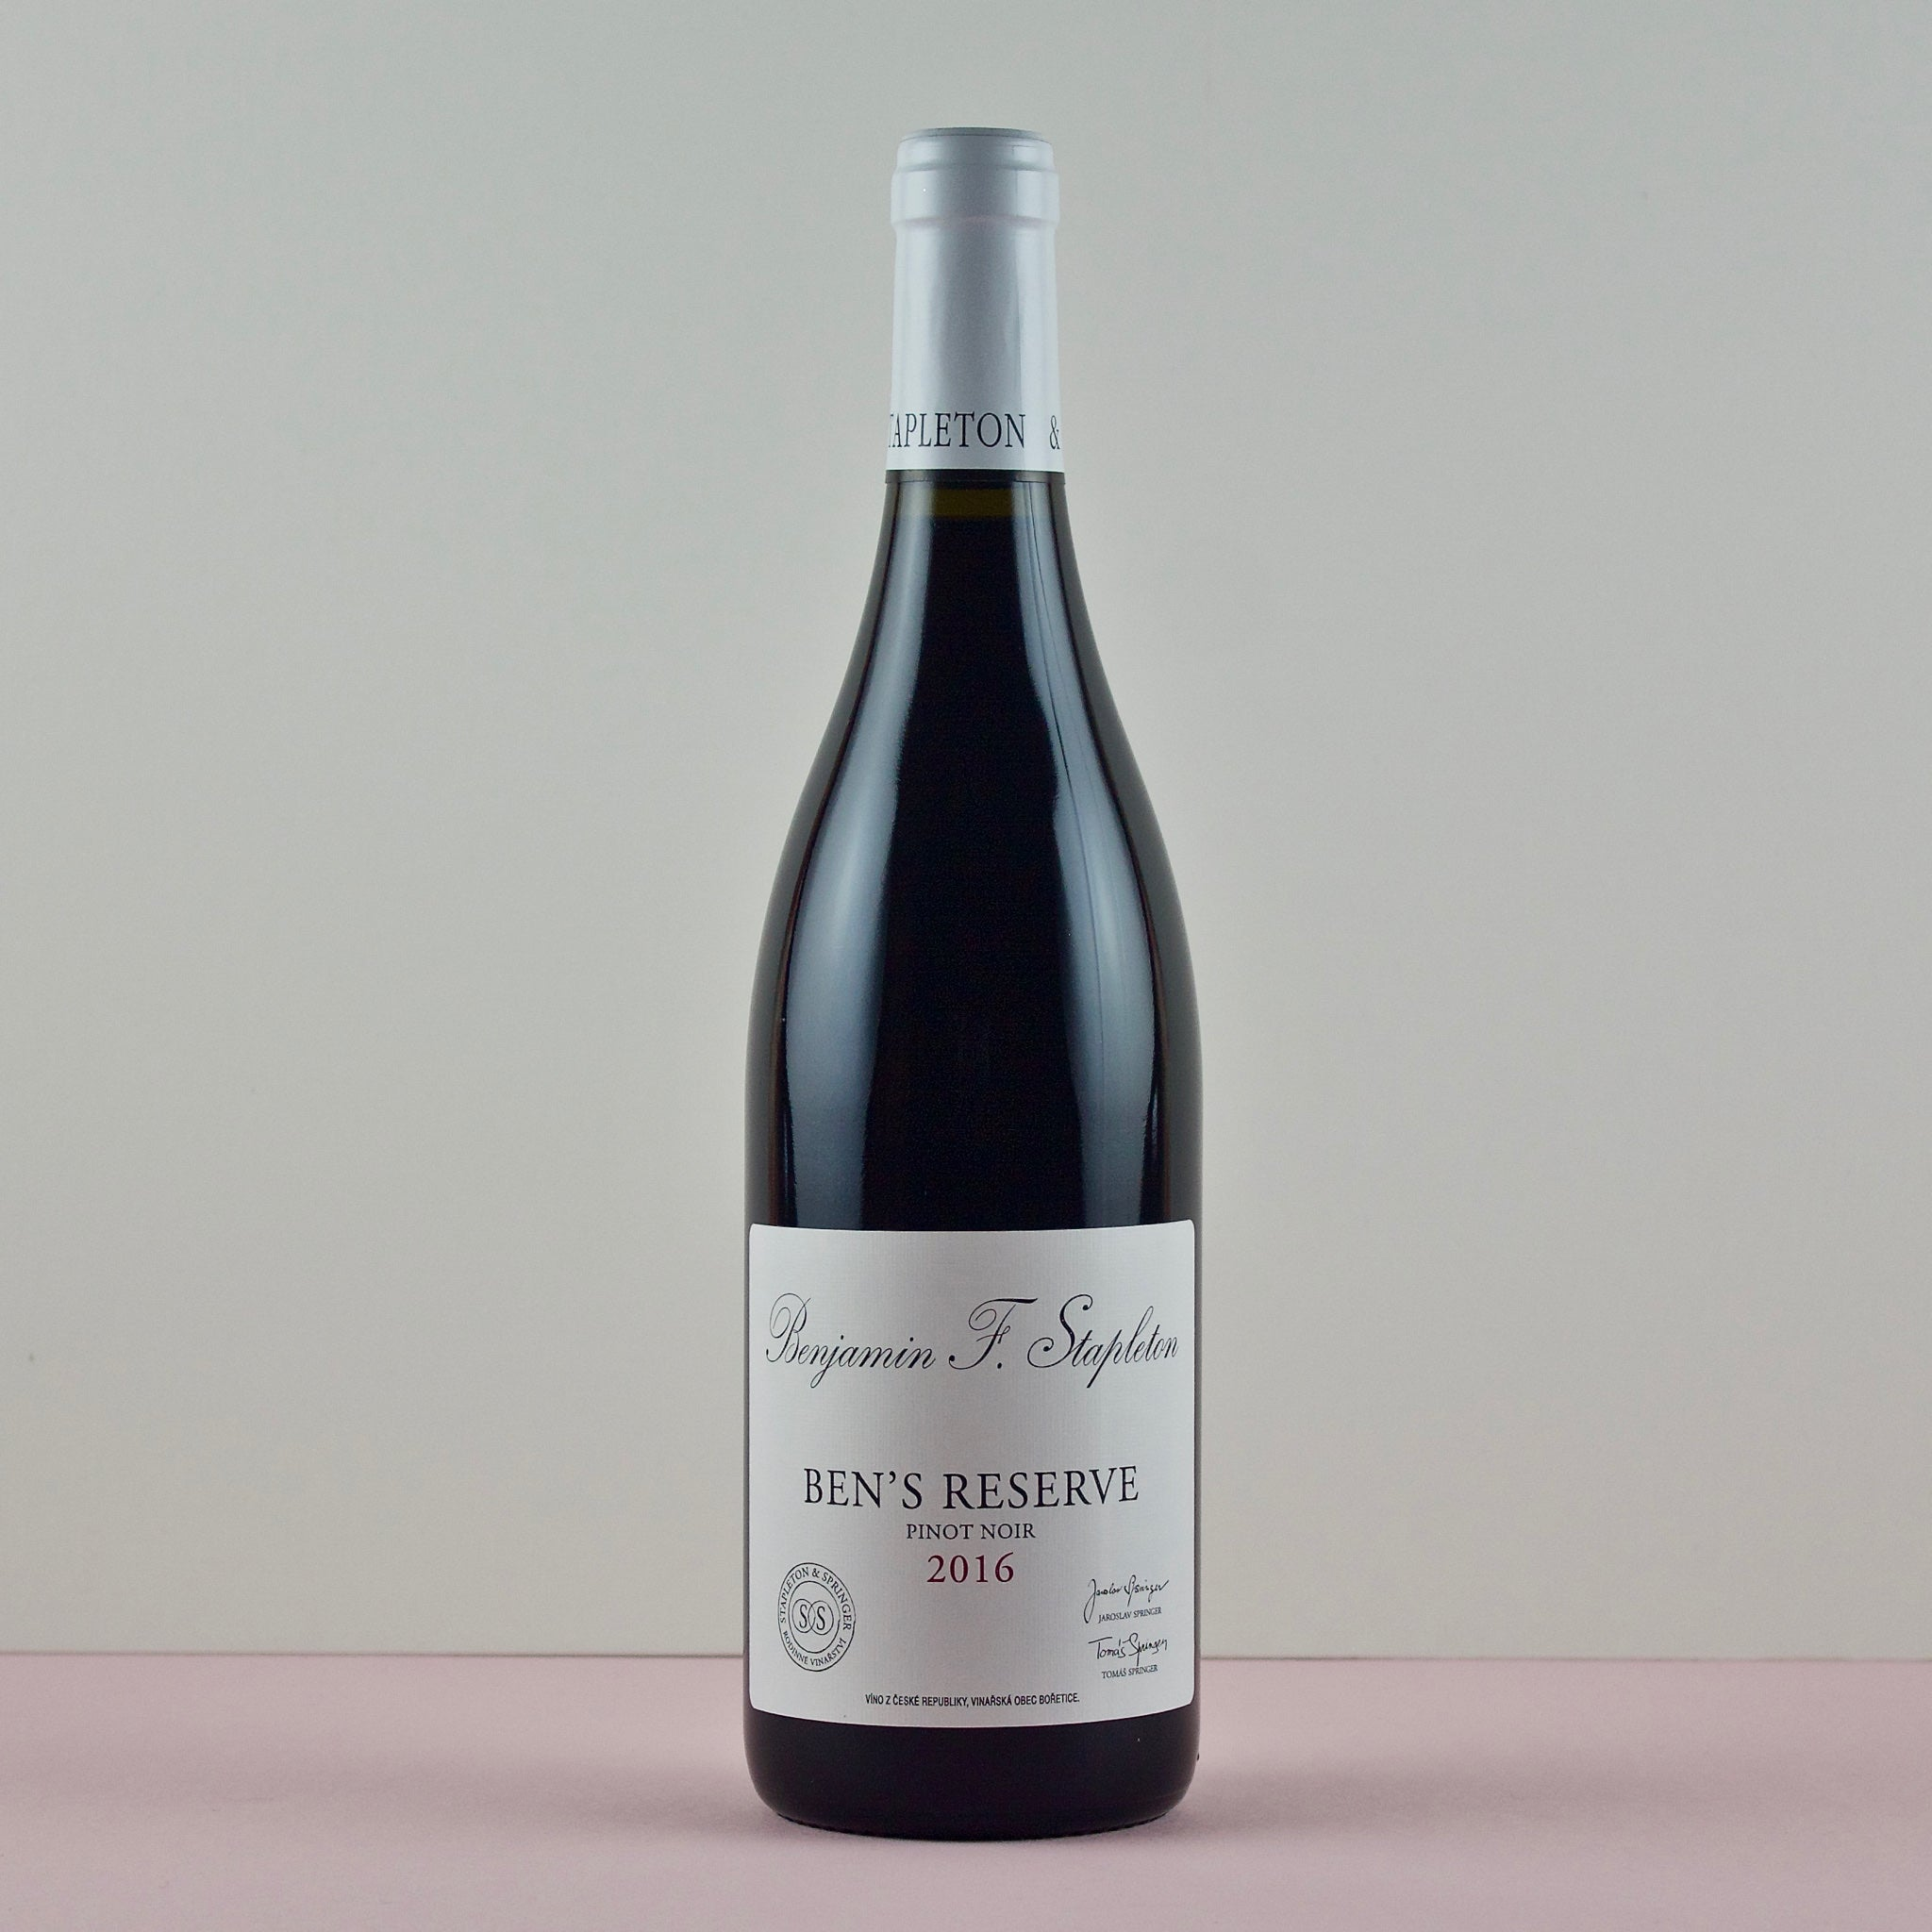 Ben's Reserve Pinot Noir, Stapleton and Springer, Moravia, Czech Republic